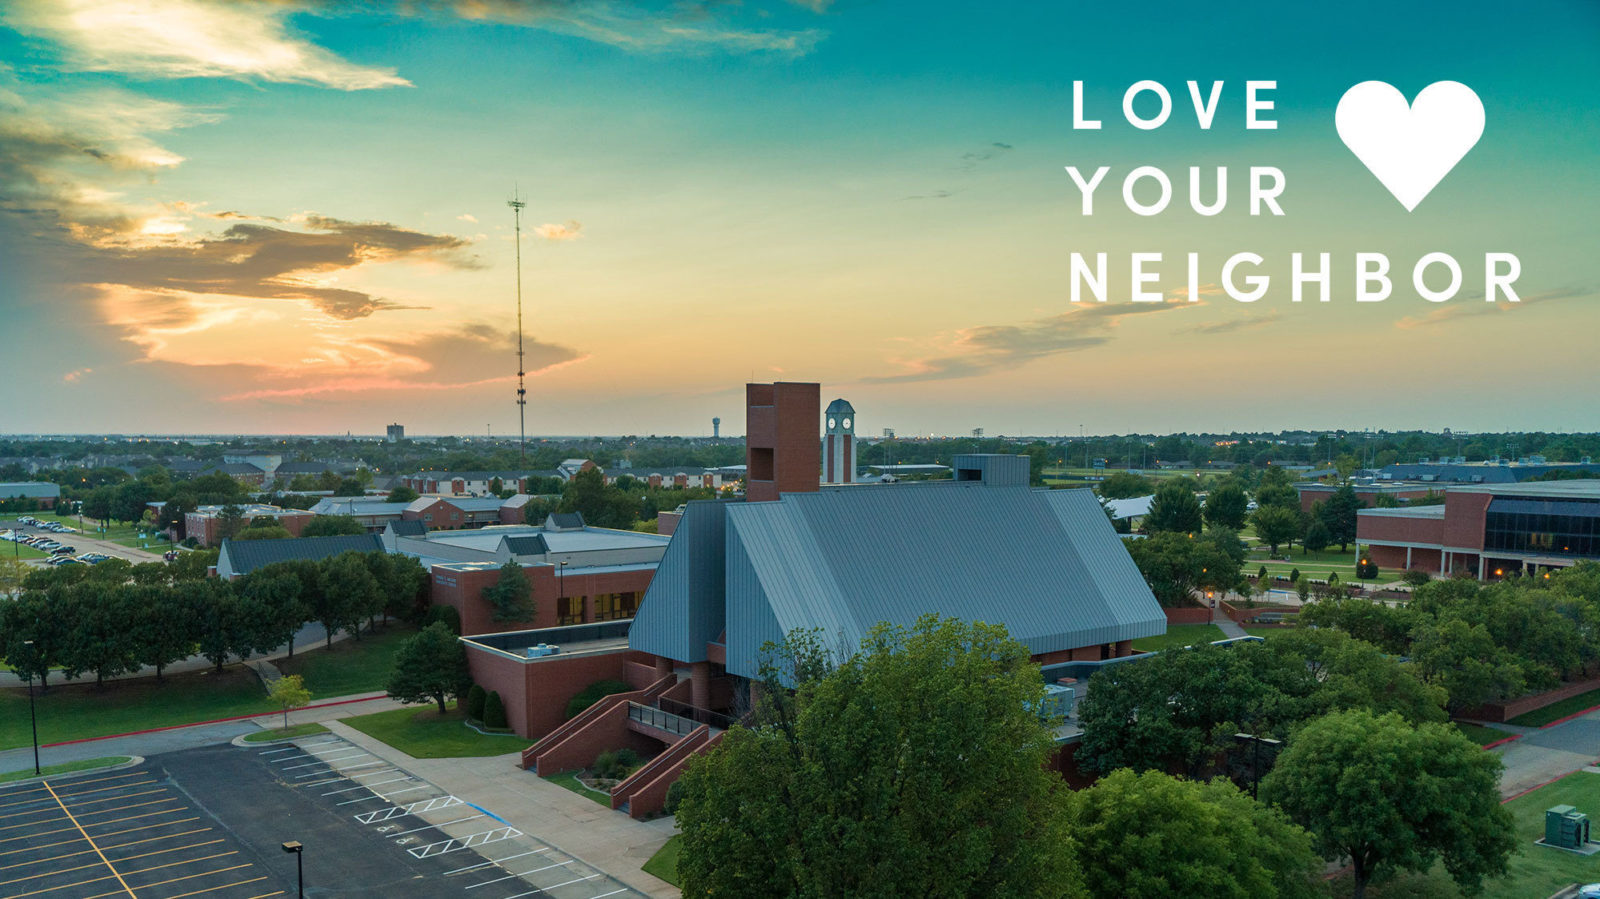 drone photo of Bible building with Love your neighbor title